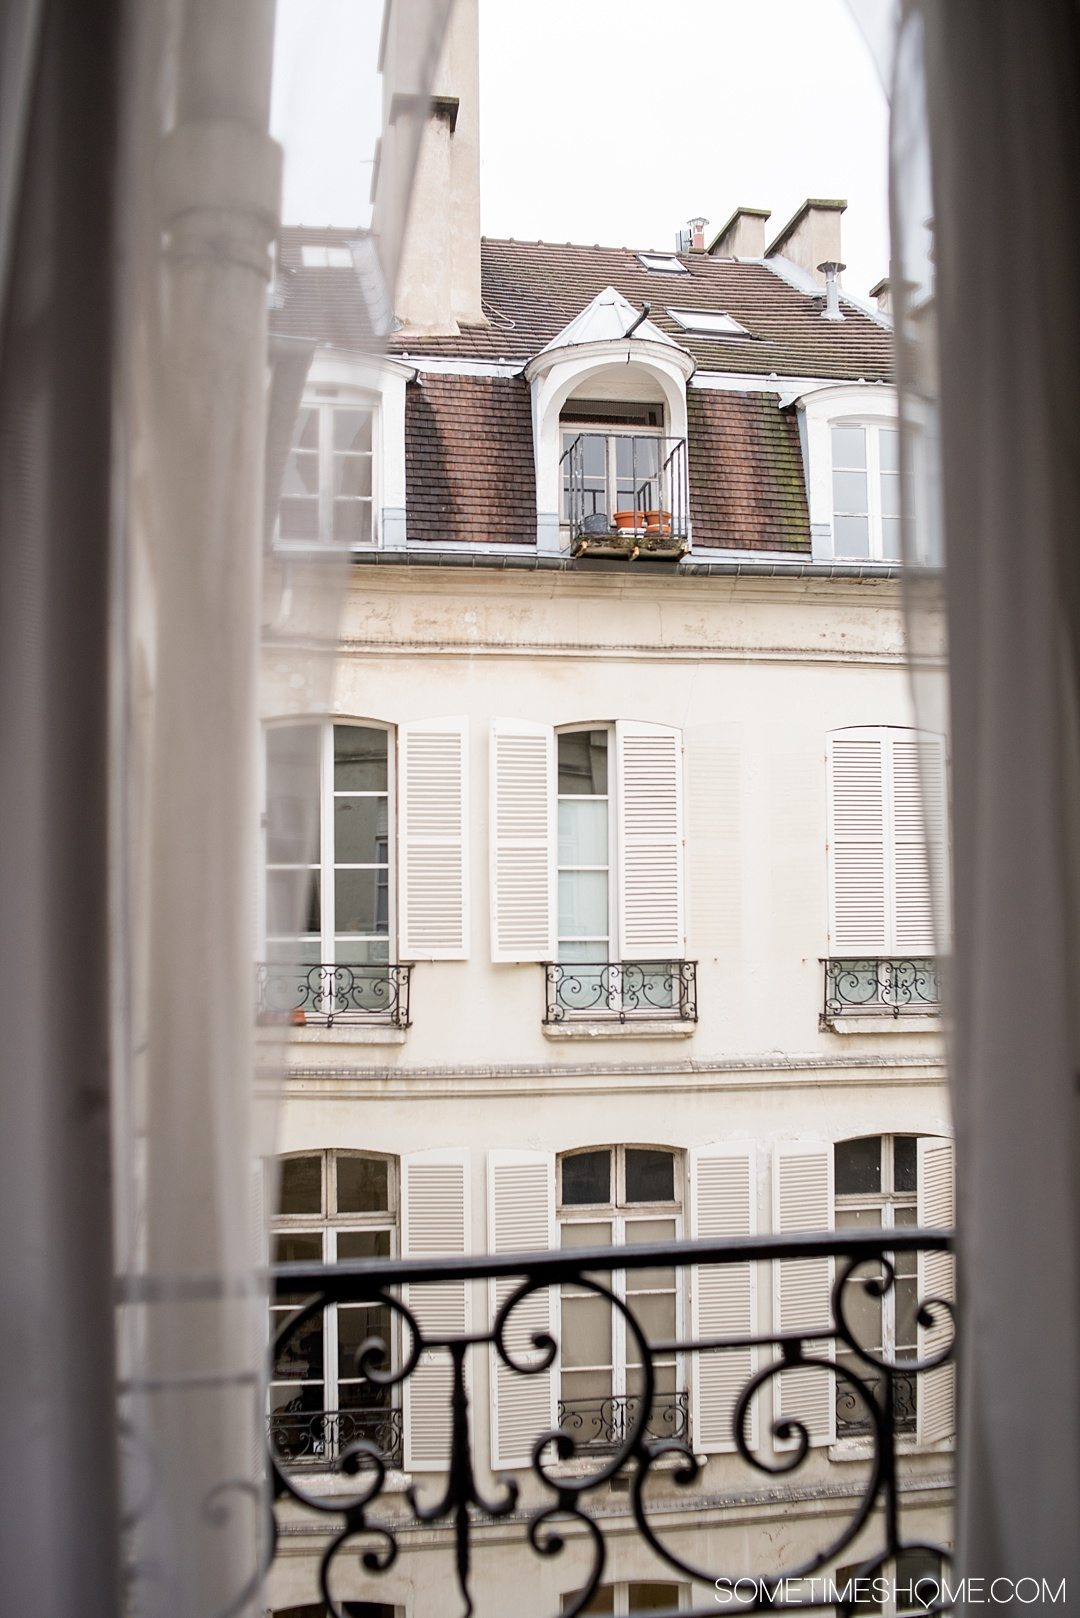 Paris hotel suite accommodation with a view at very affordable prices in the historic Le Marais district. Click through to the article for a complete review!